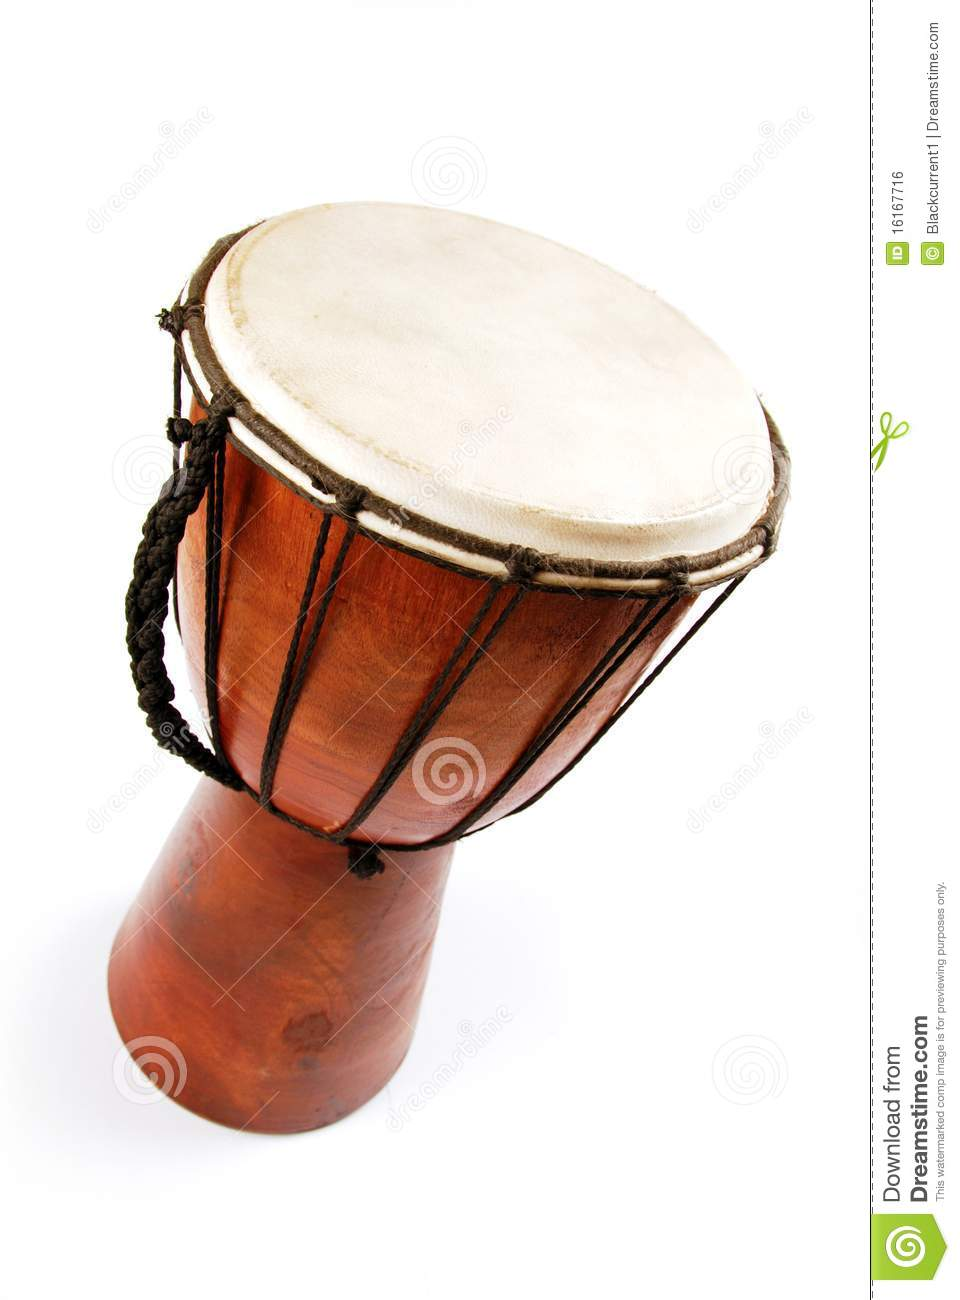 african drum notes Djembe drums for sale, the cultural use and significance of the hand carved djembe or african drum.